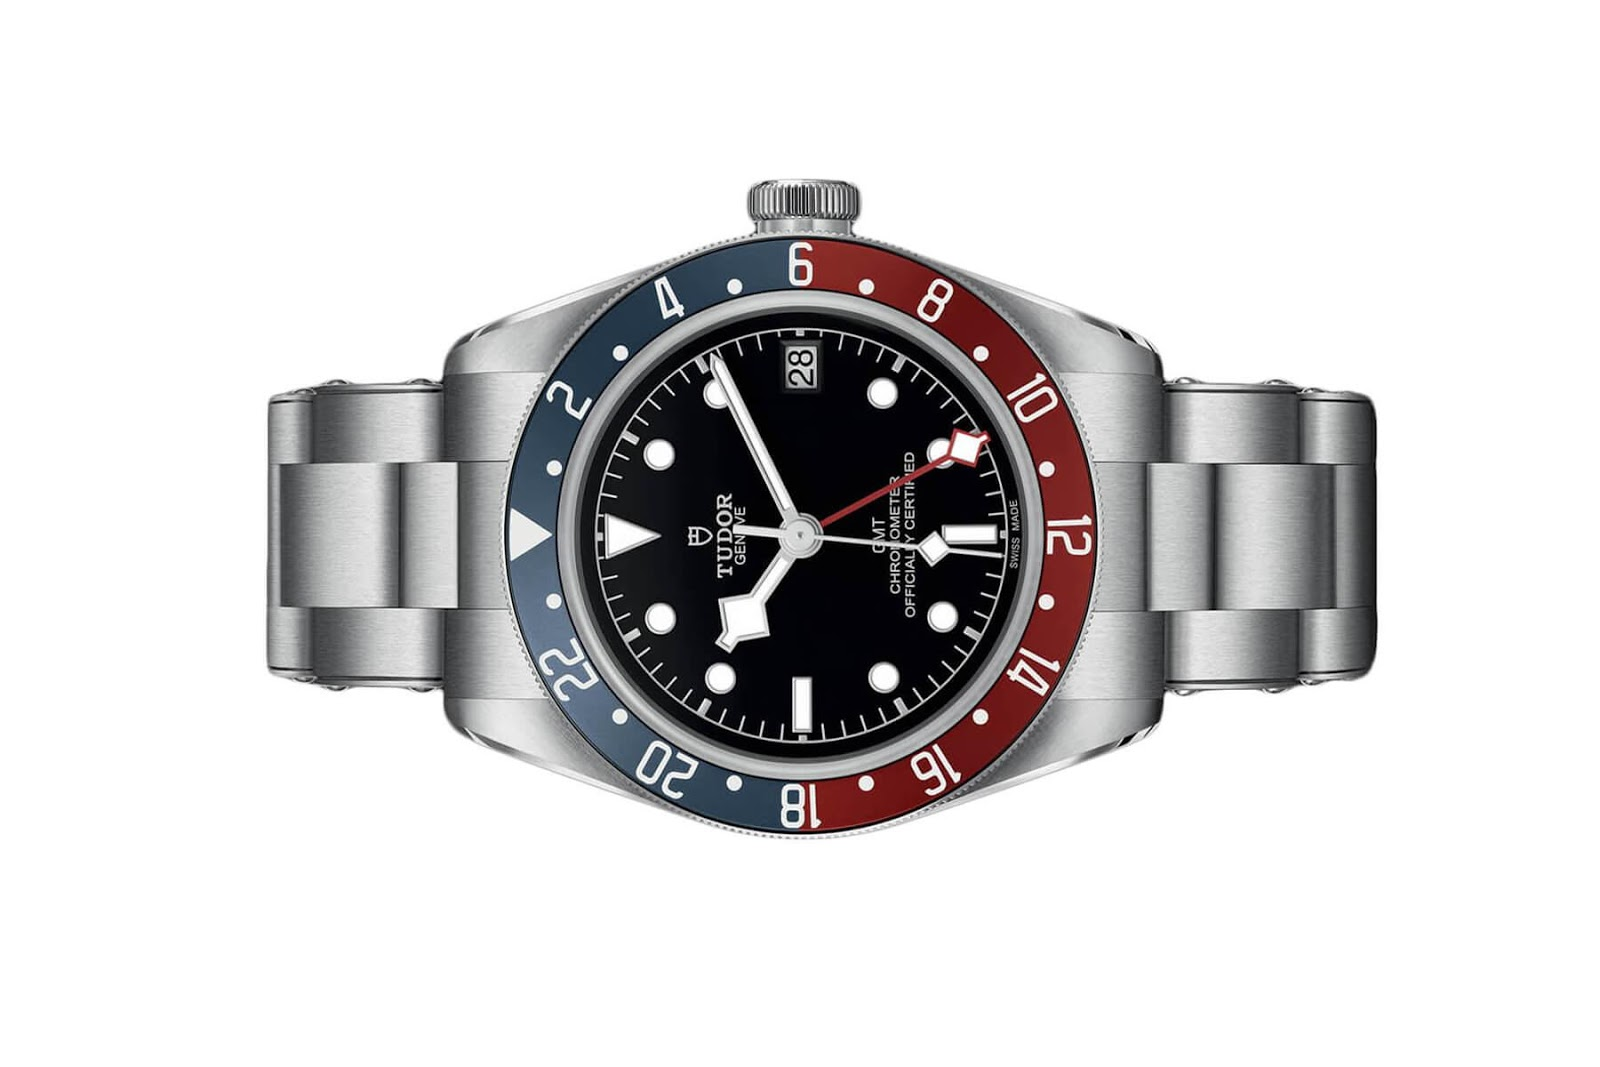 tudor-black-bay-gmt-pepsi-bezel-79830rb.jpg